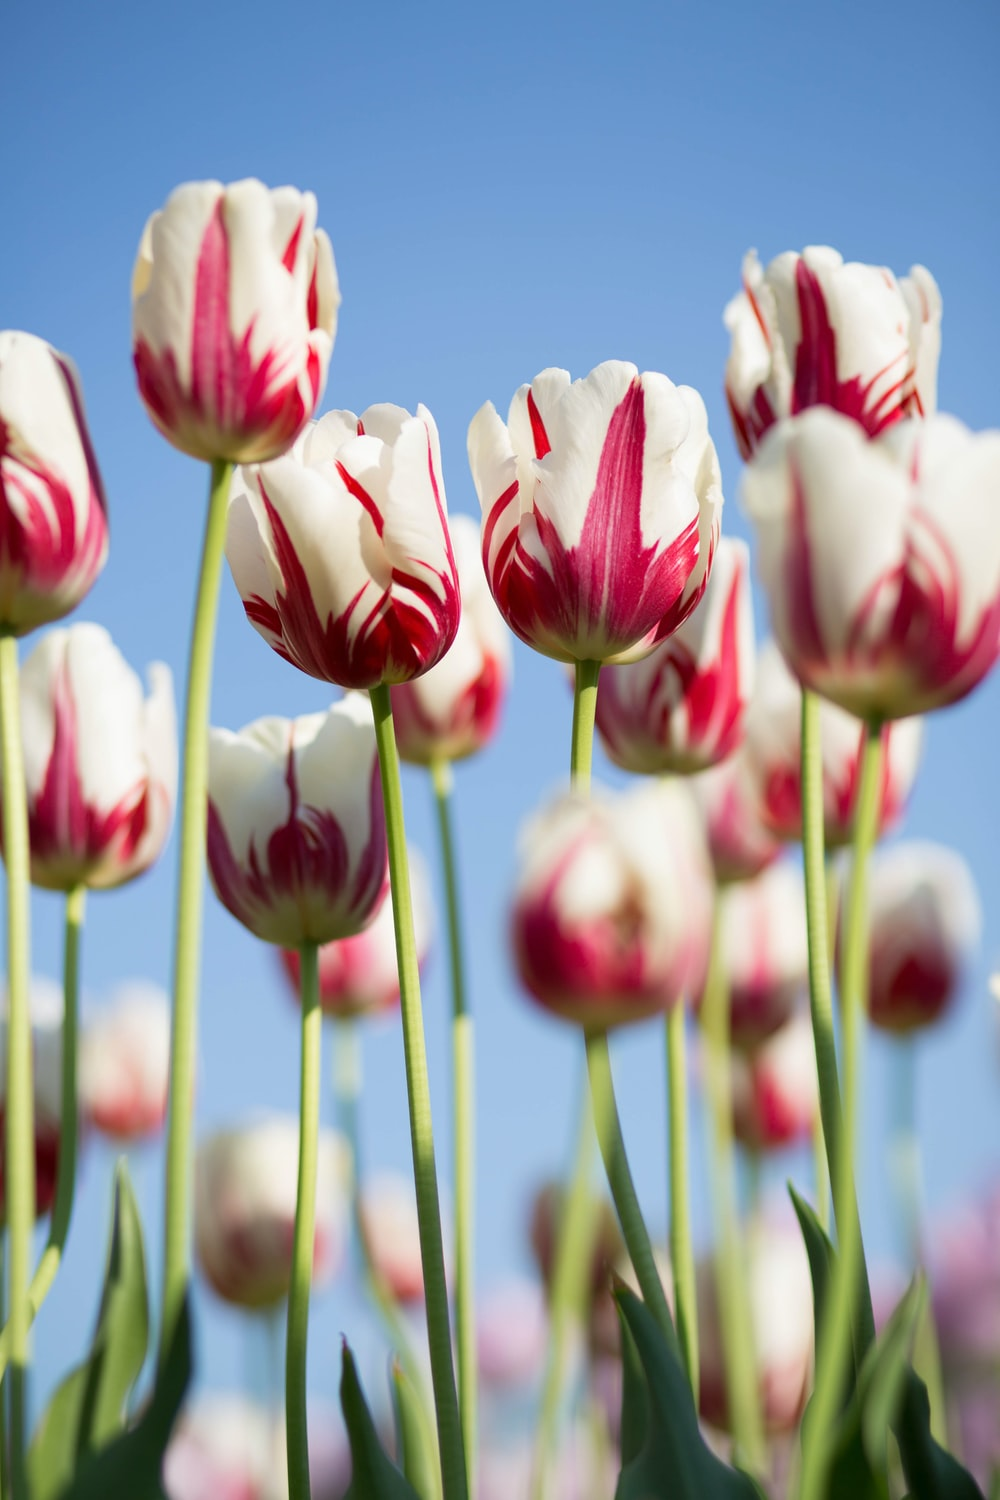 Best 500 tulip pictures hd download free images on unsplash shallow focus photography of white and pink petaled flowers izmirmasajfo